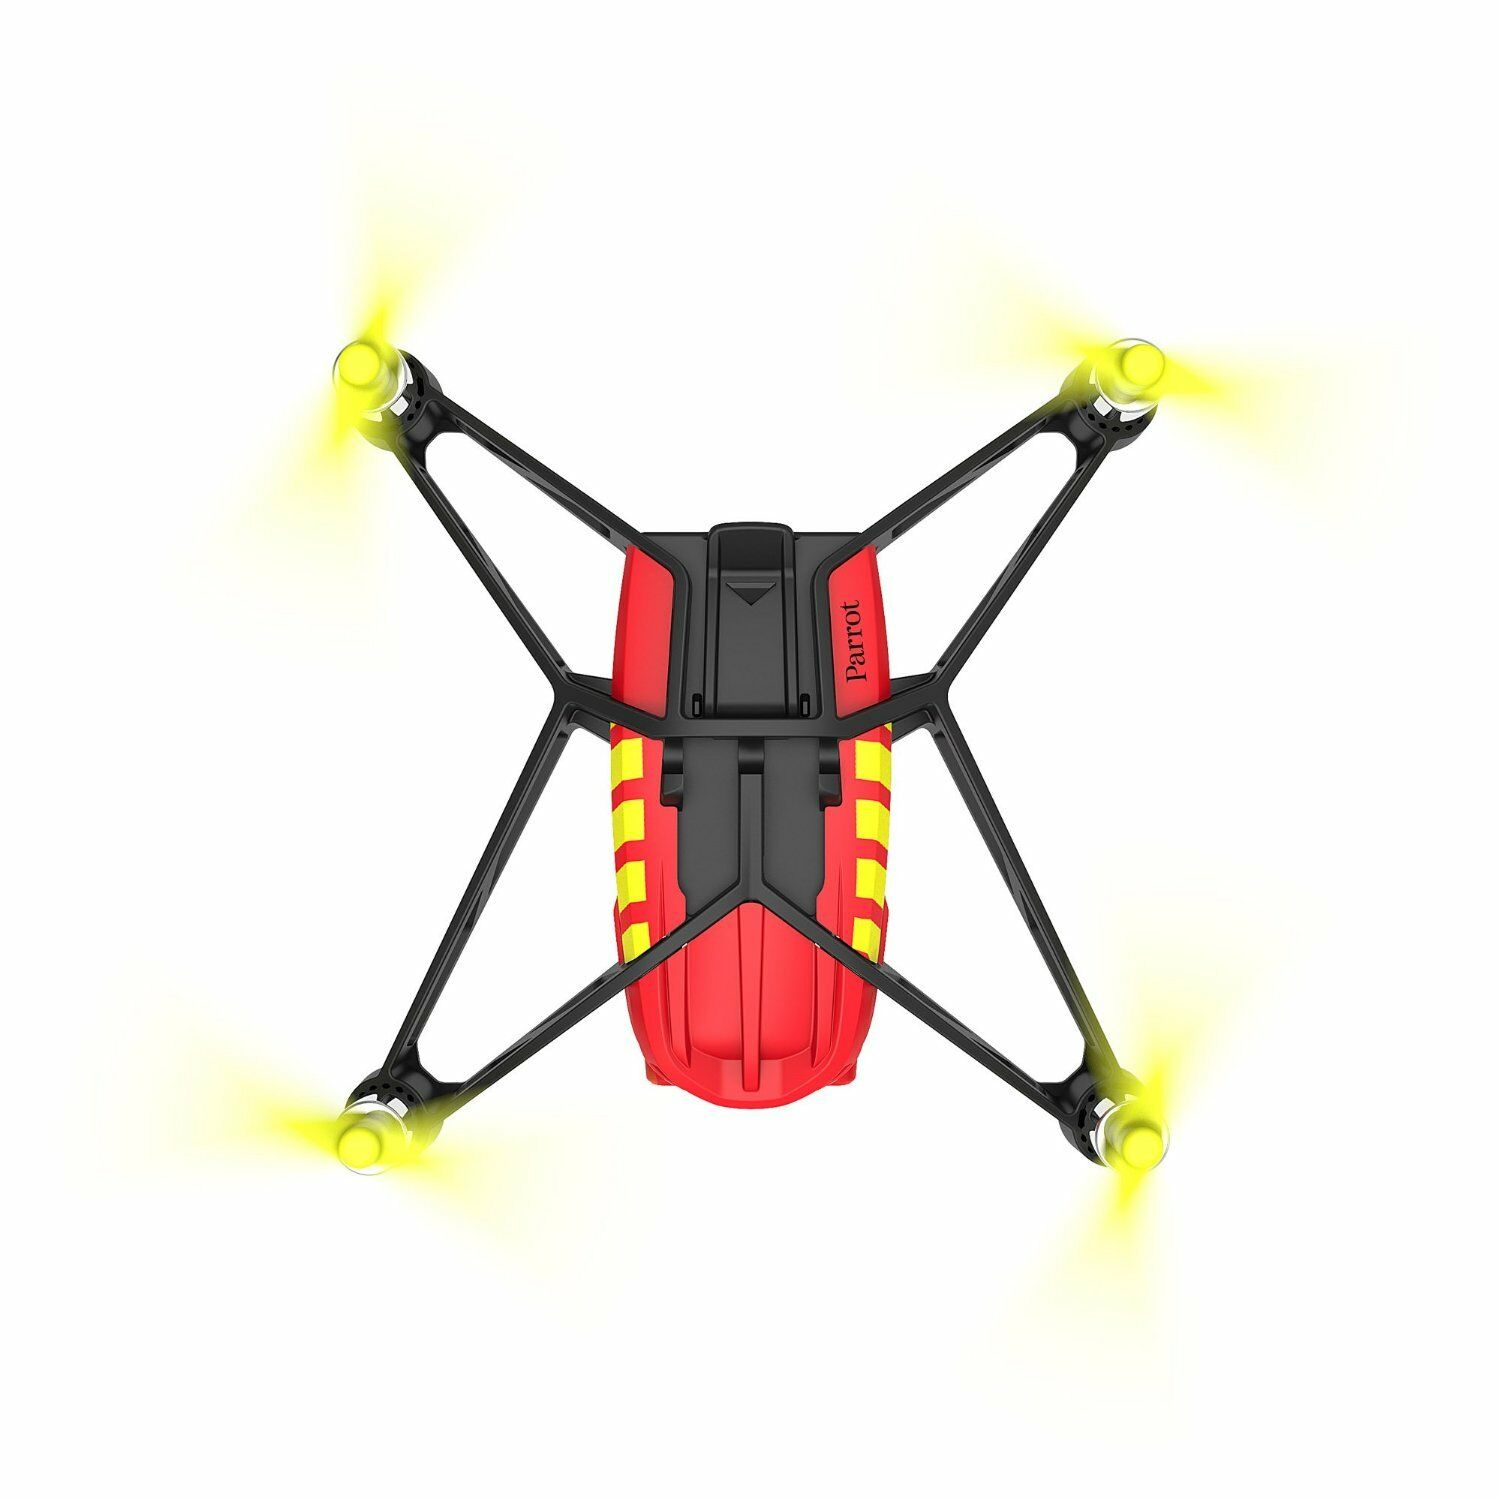 Parred Parred Parred mini drone airborne night Quad Copter Blaze PF723132 from Japan eacced